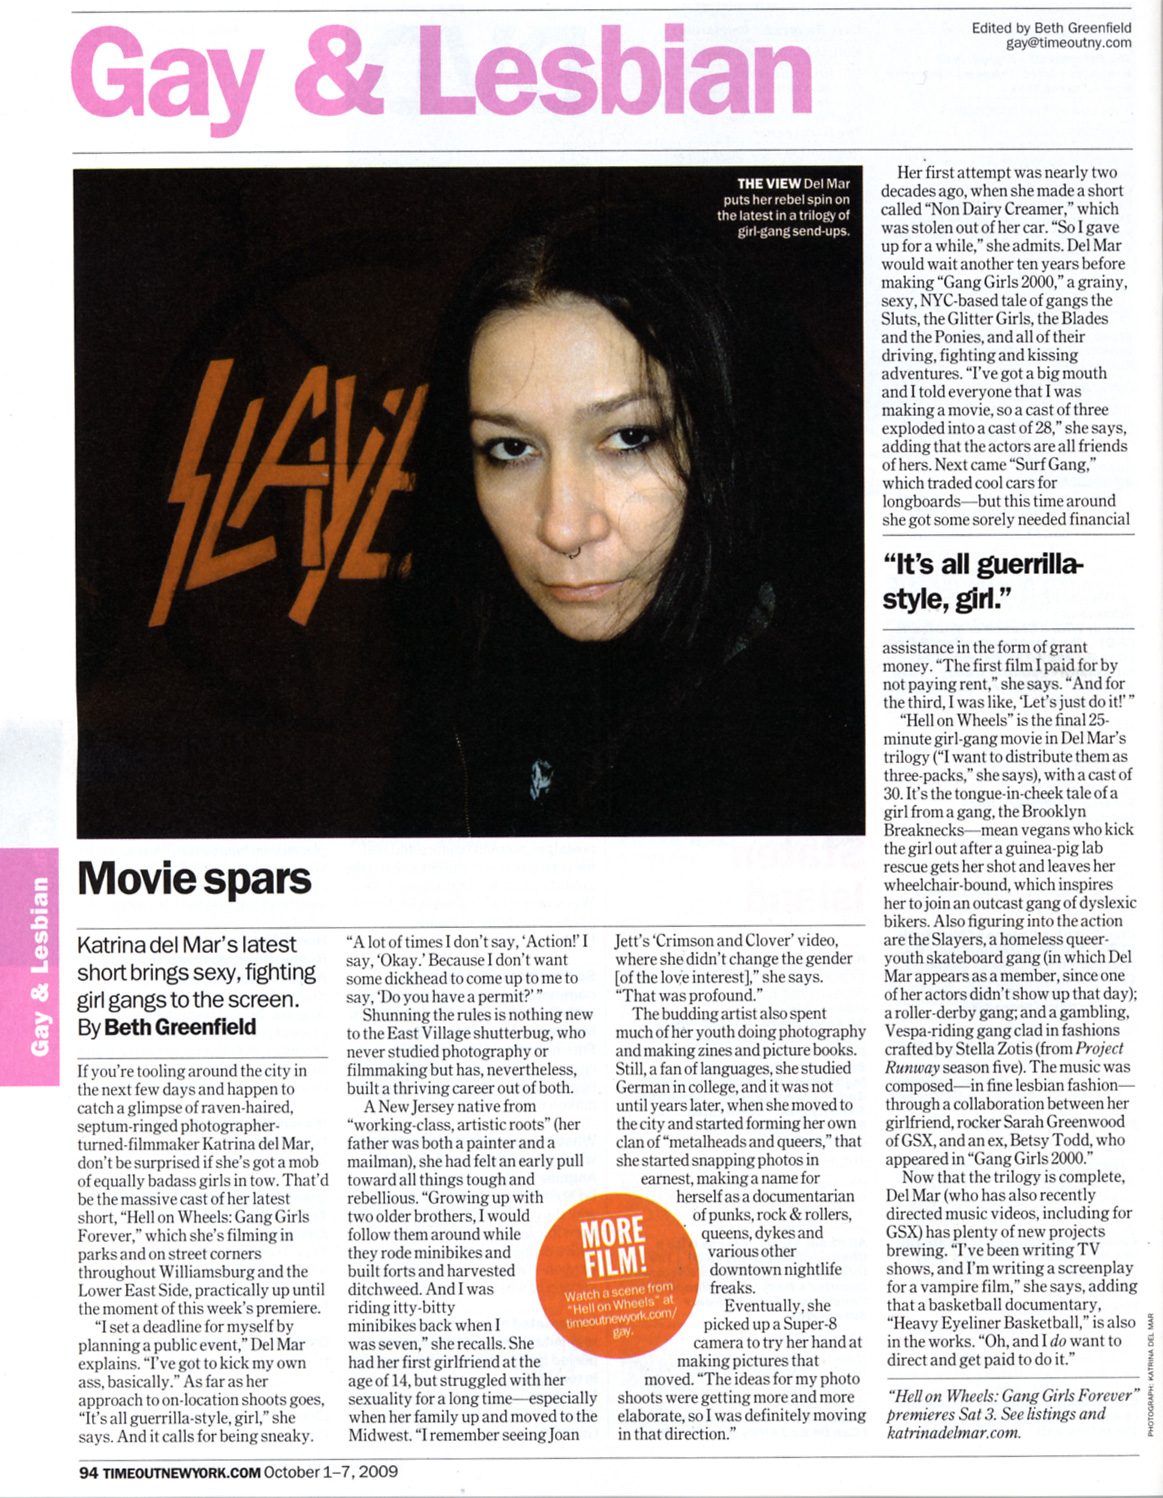 Katrina del Mar interviewed in Time Out NY